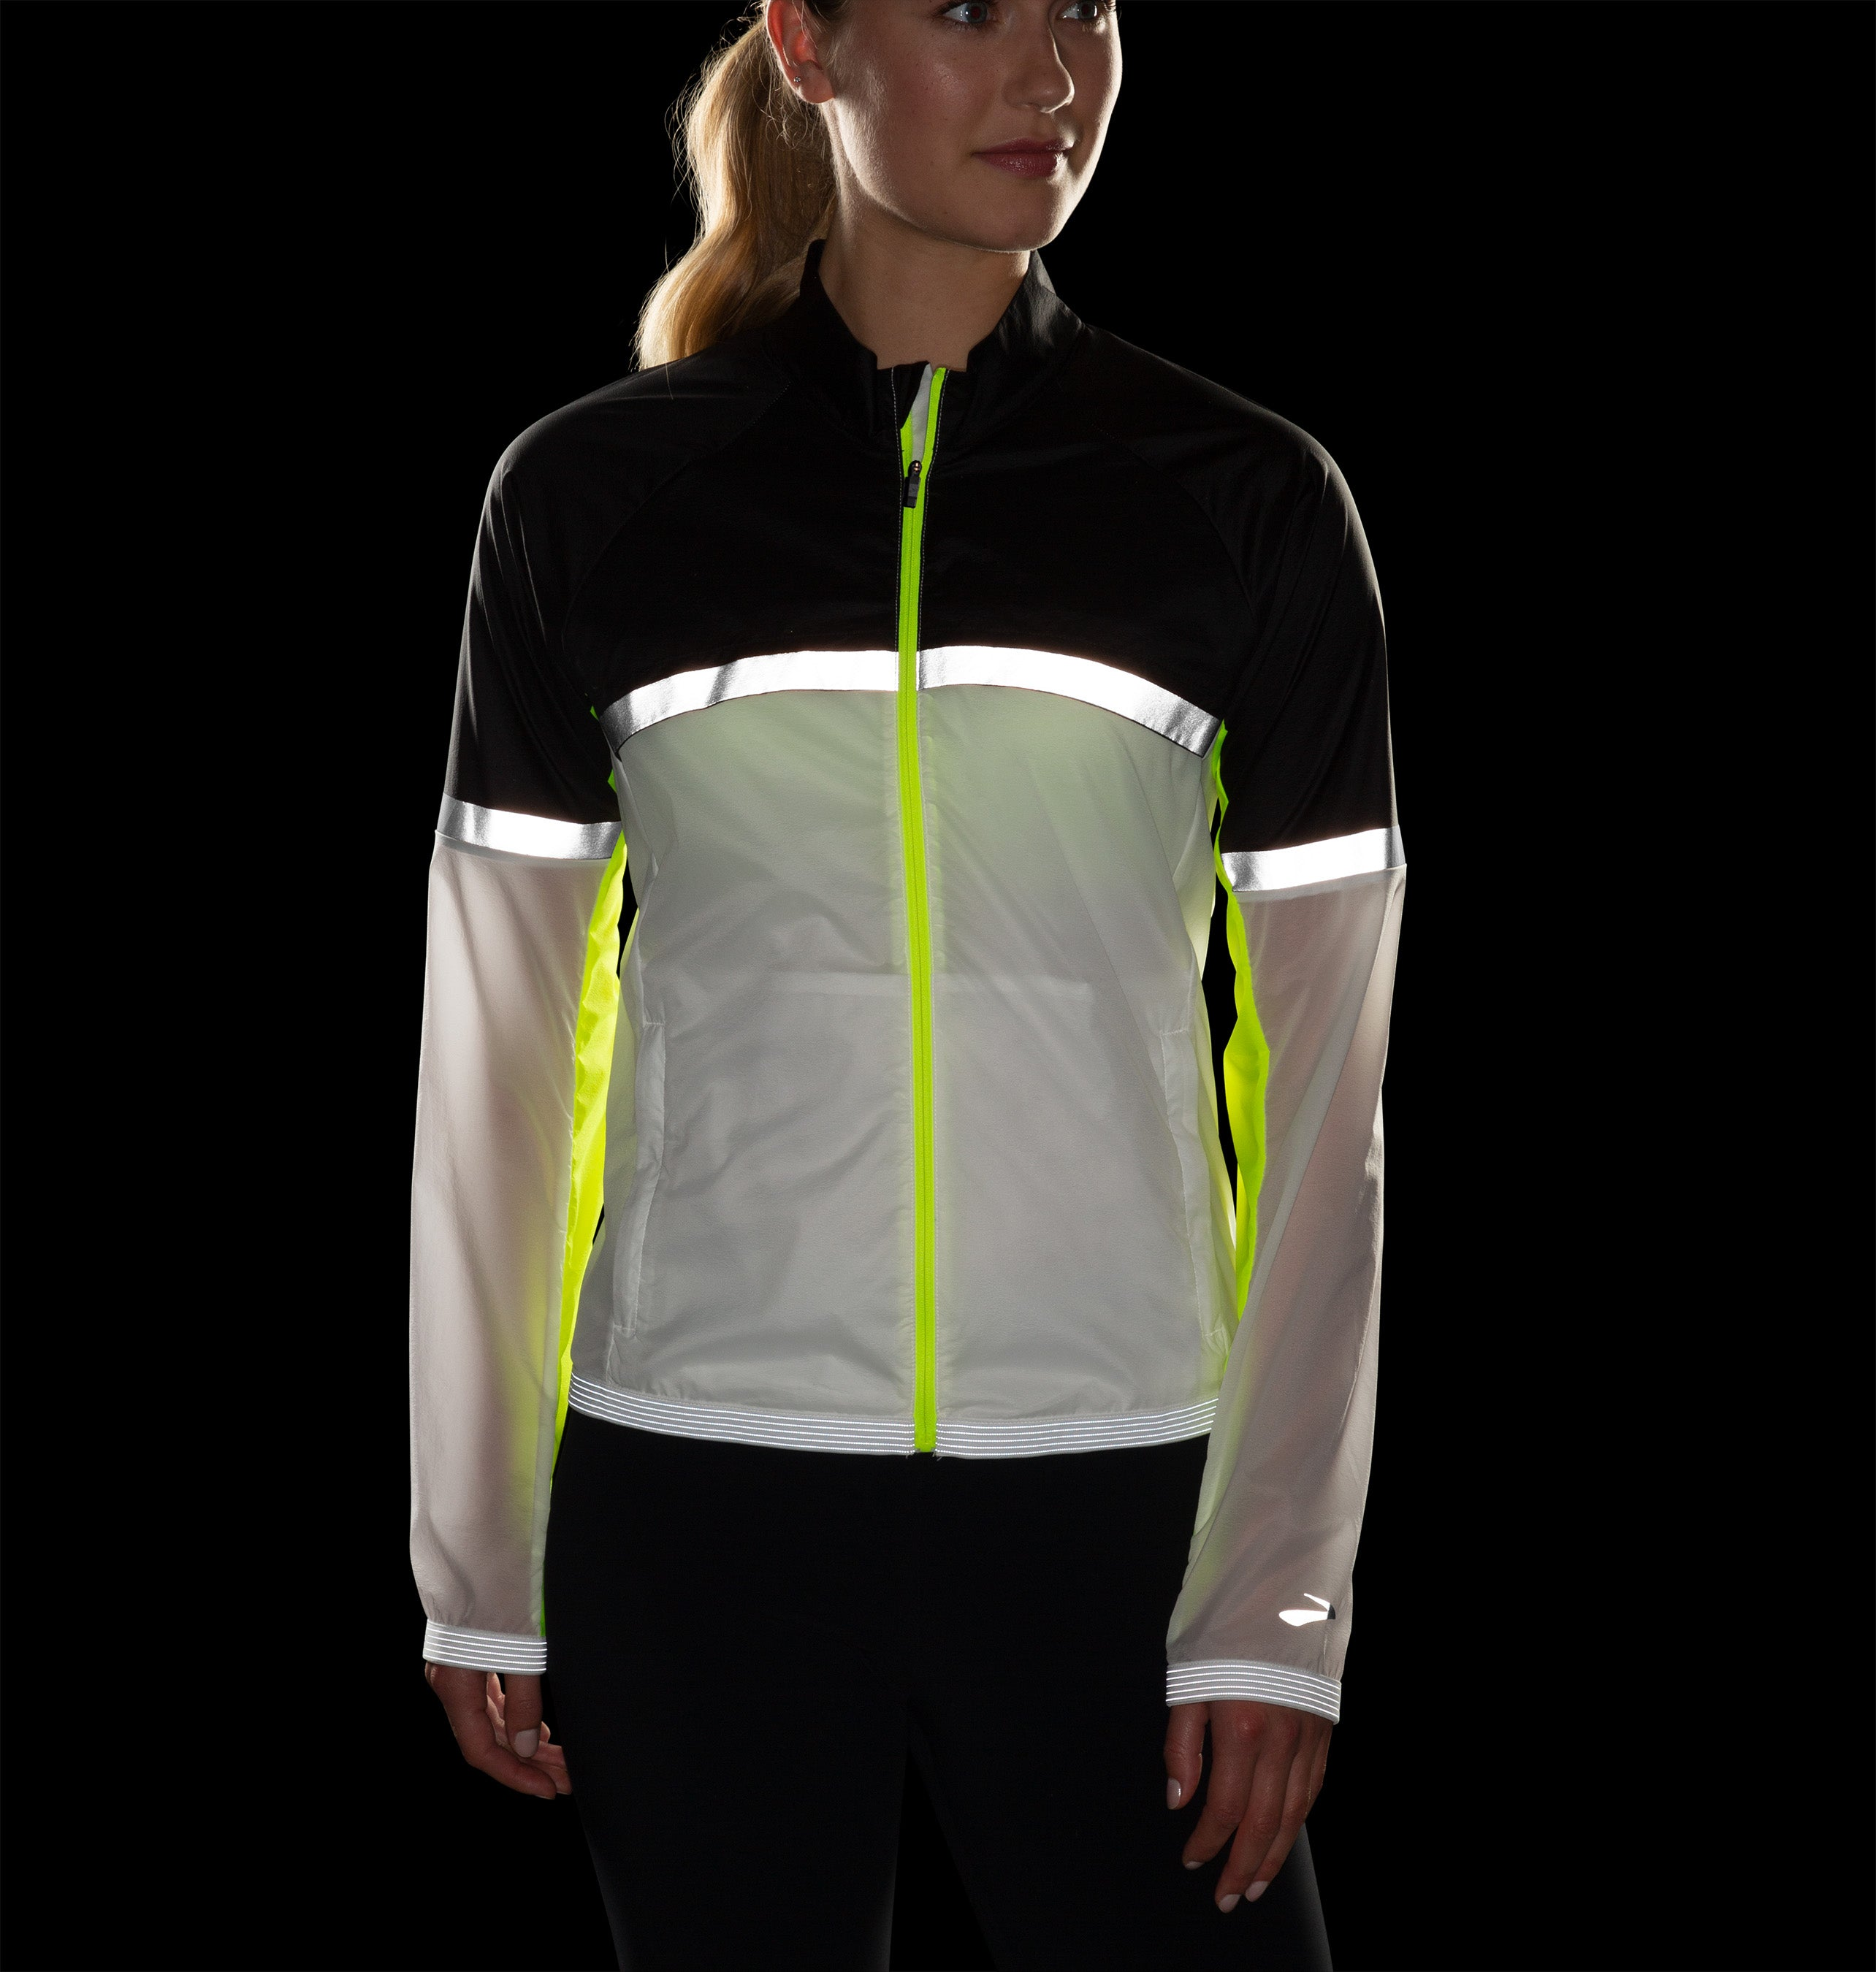 Women's Carbonite Jacket (753 - Luminosity)